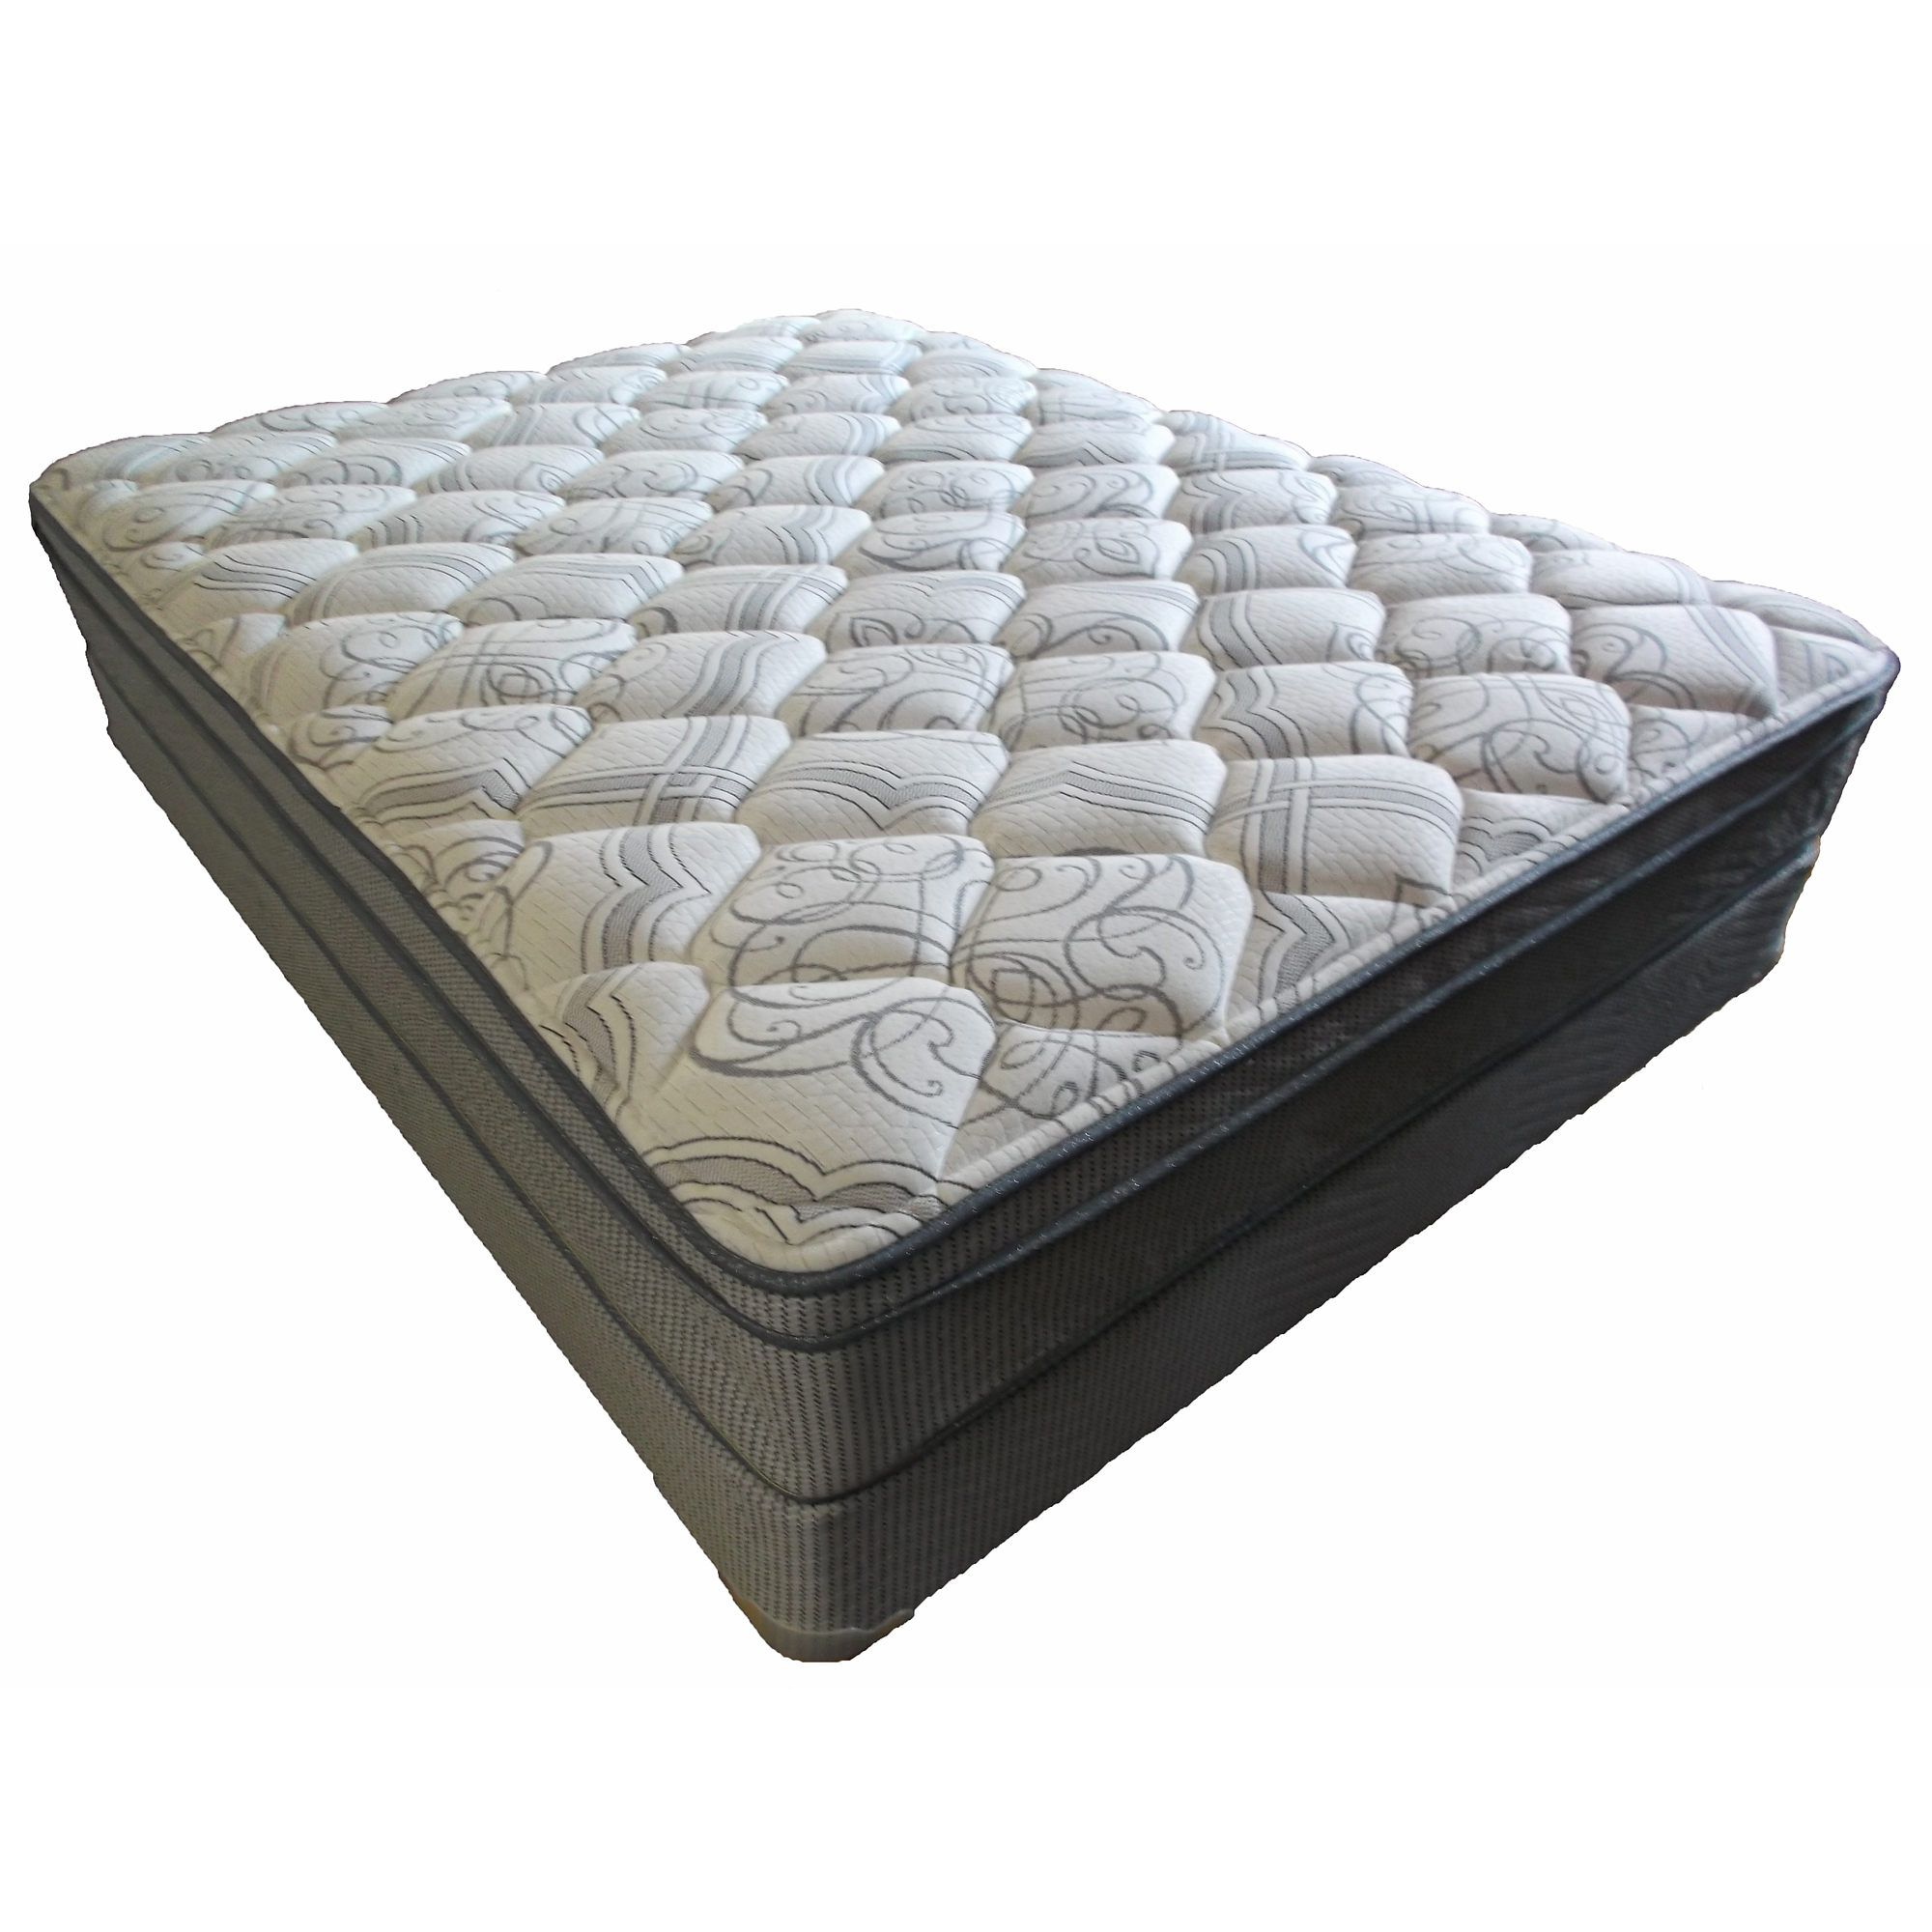 Berkley Jensen Queen-Size Euro Pillowtop Mattress Set - BJ ...